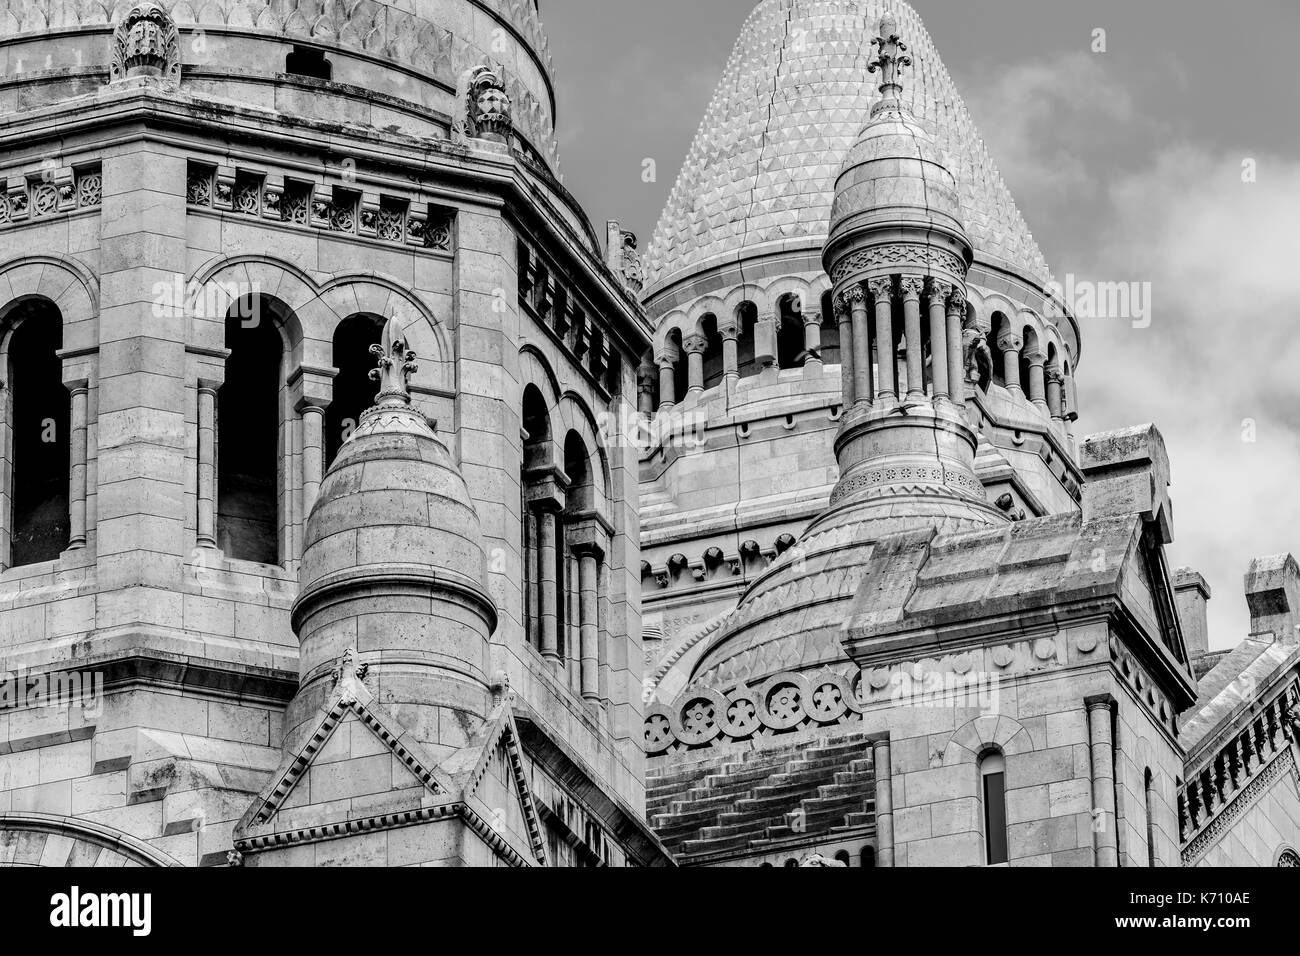 Close up View of the Dome of Sacre Coeur in Paris - Stock Image